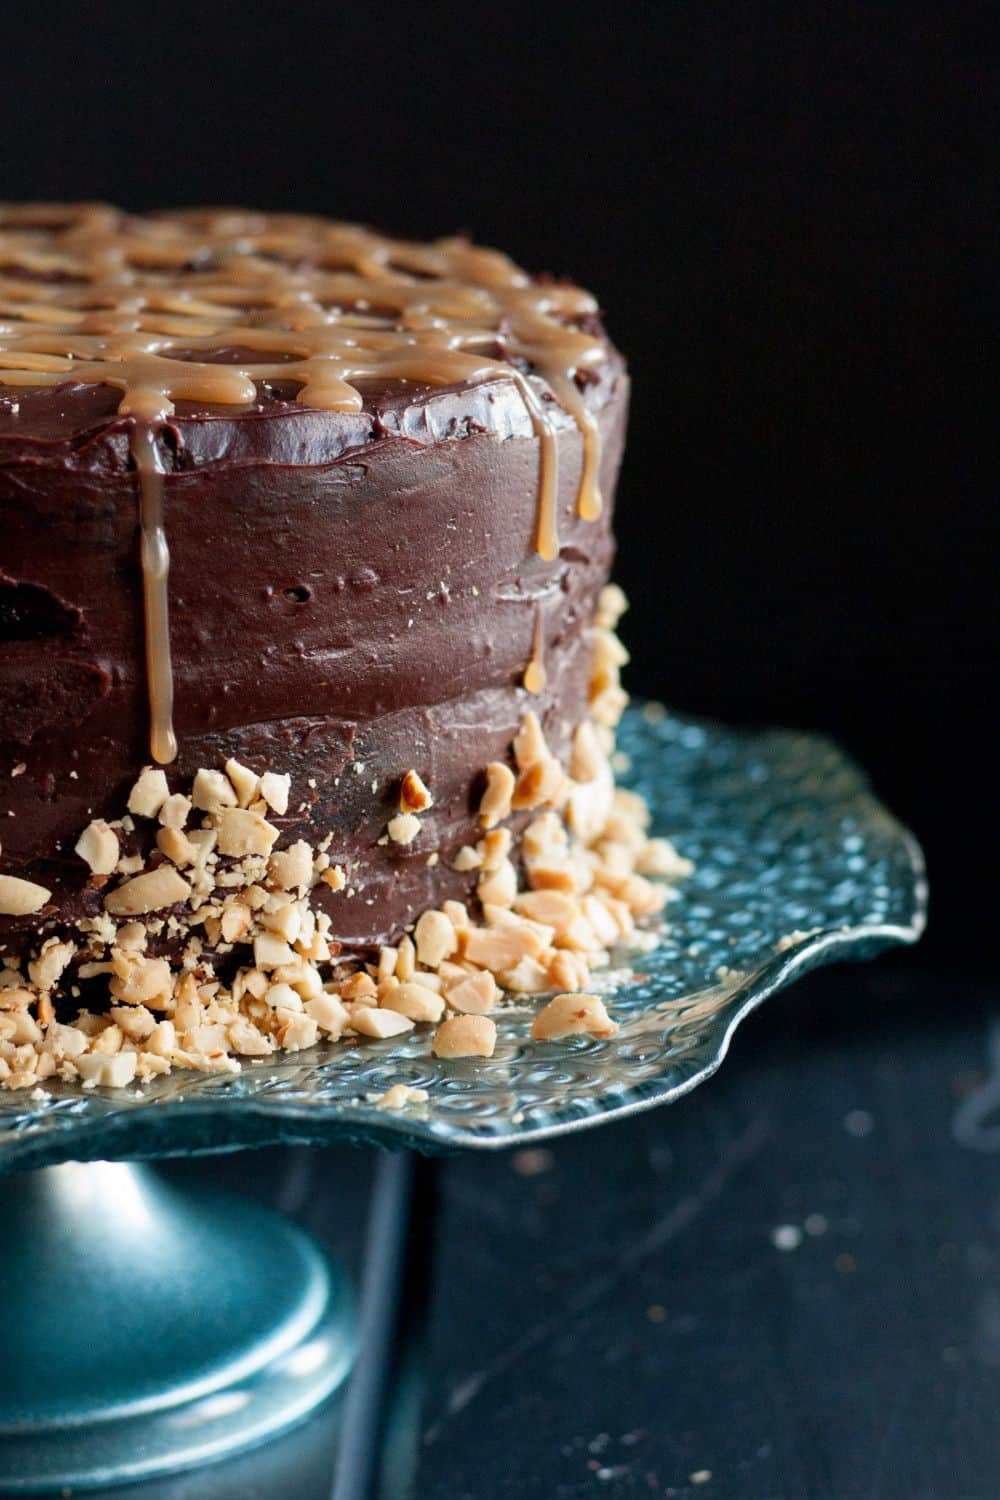 Chocolate Cake With Caramel Treat